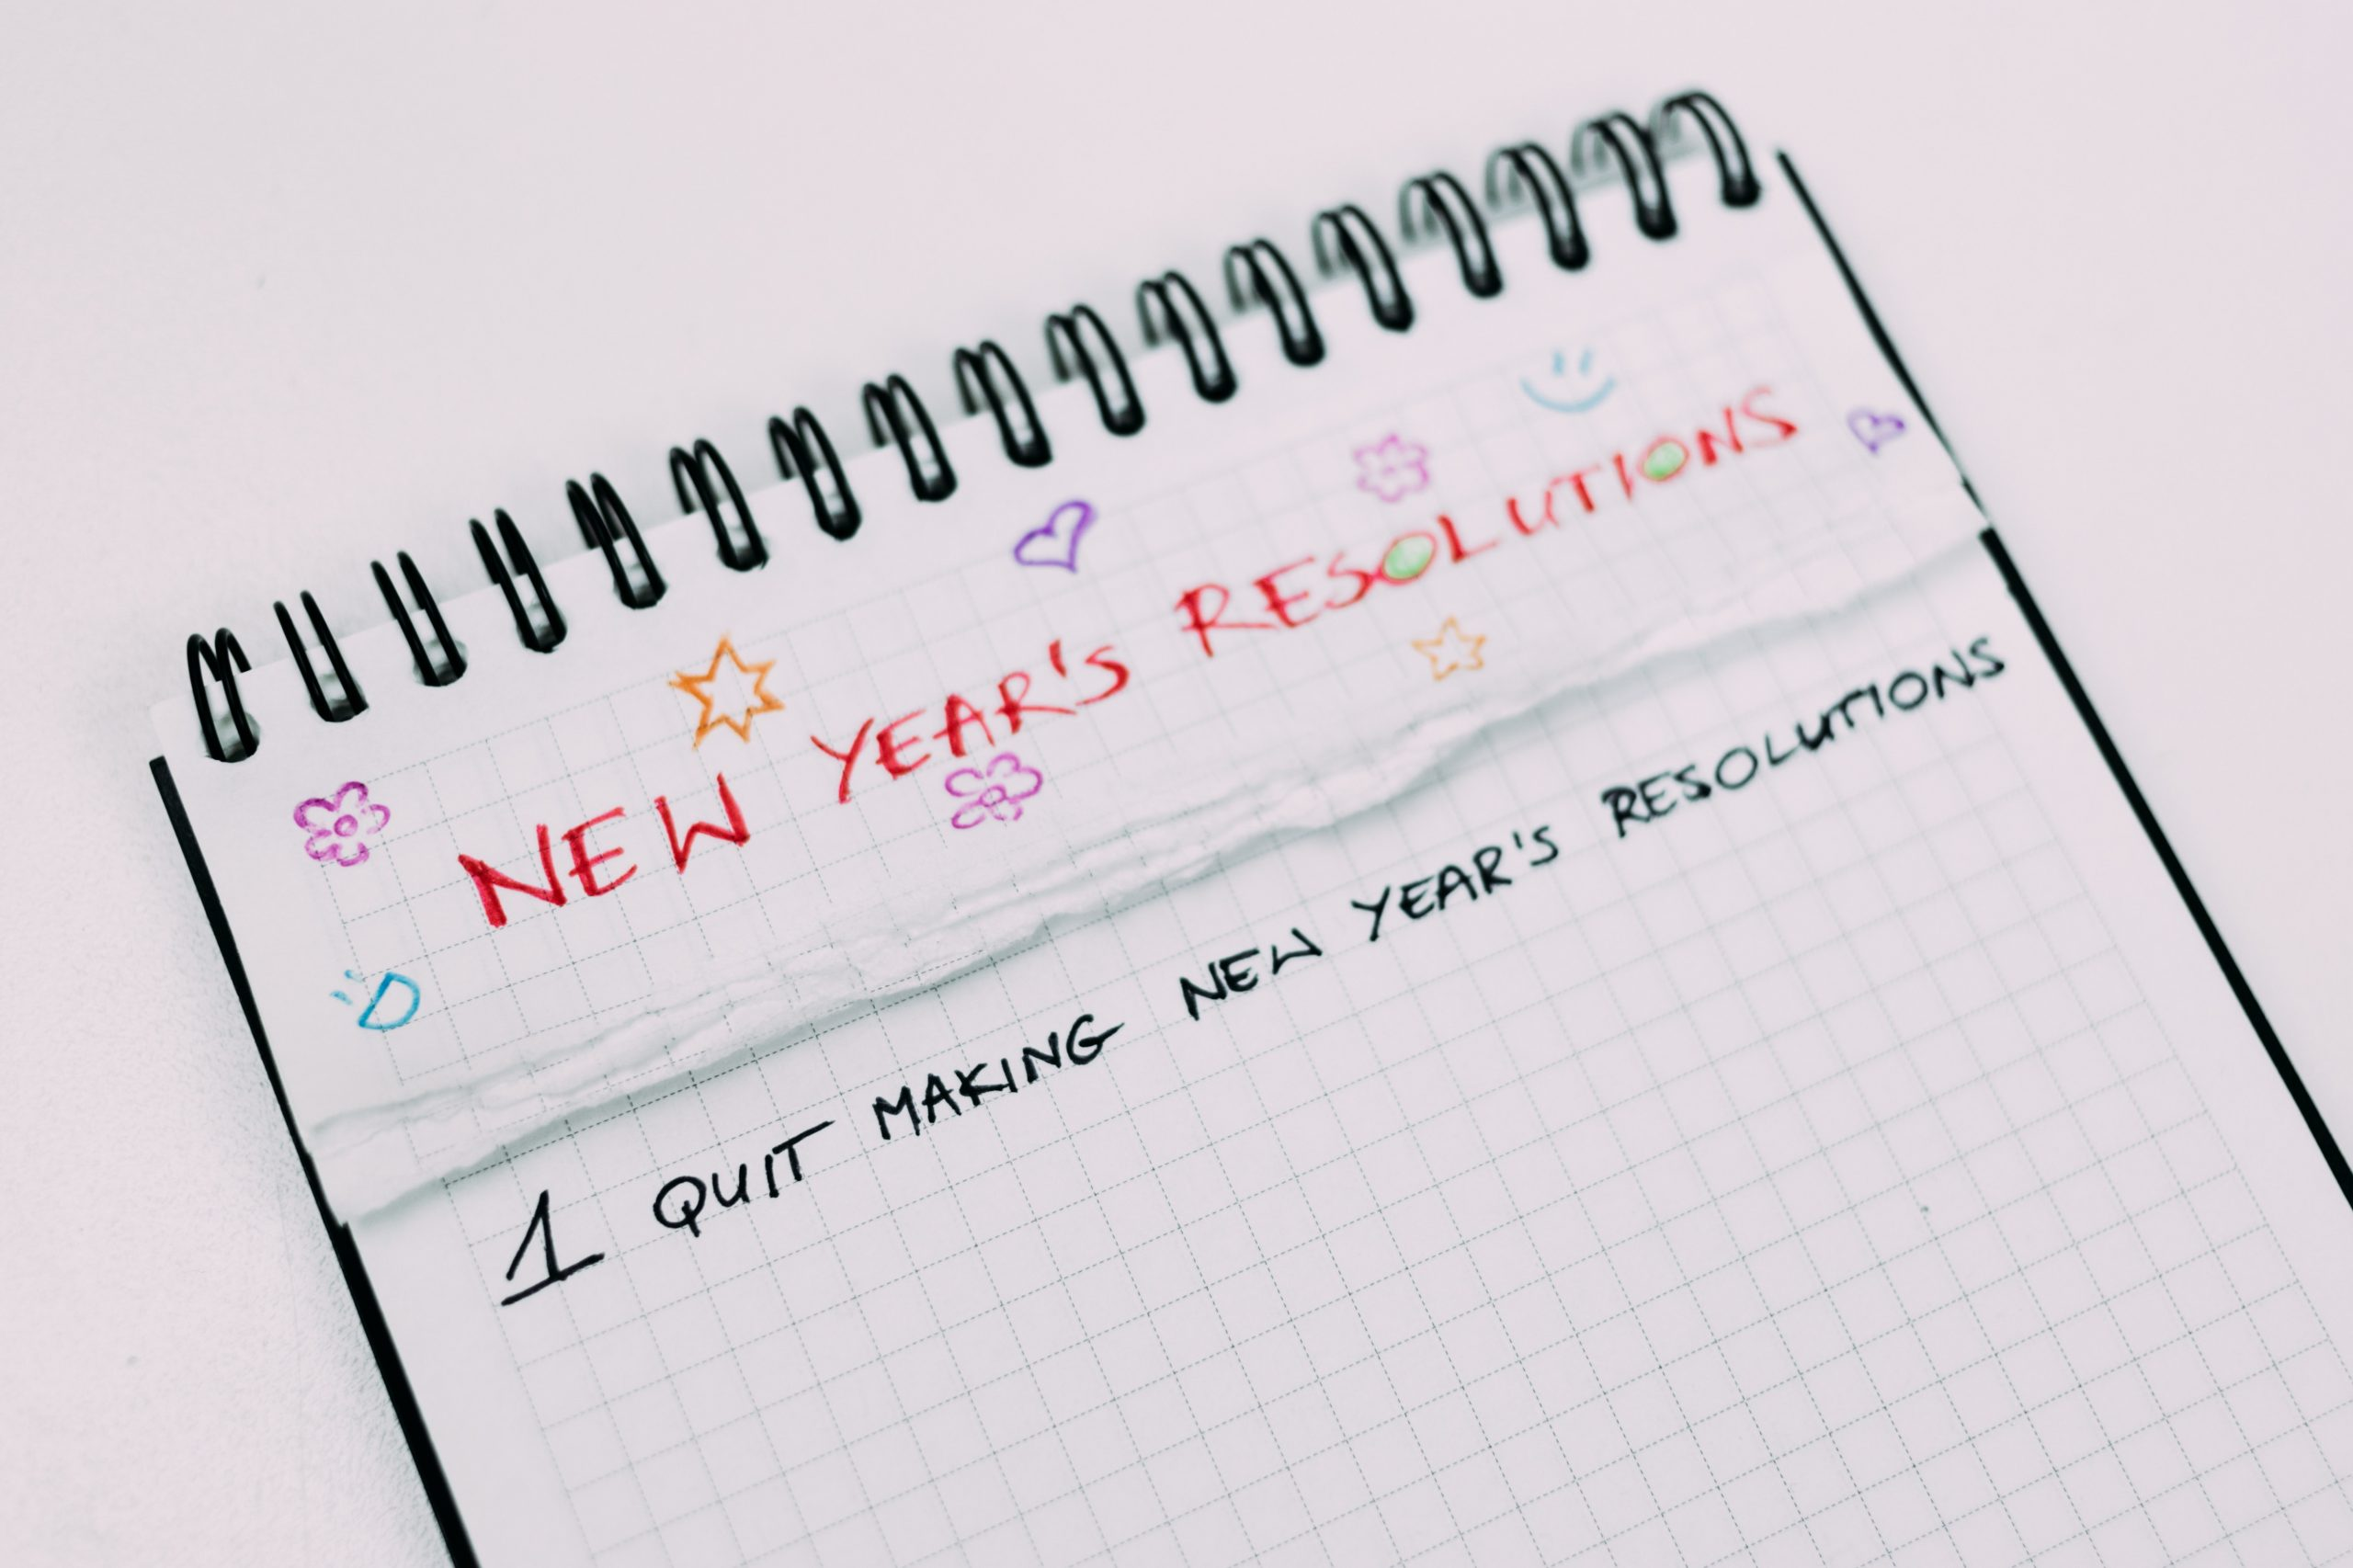 You didn't fail your New Year's resolution; your New Year's resolution failed you